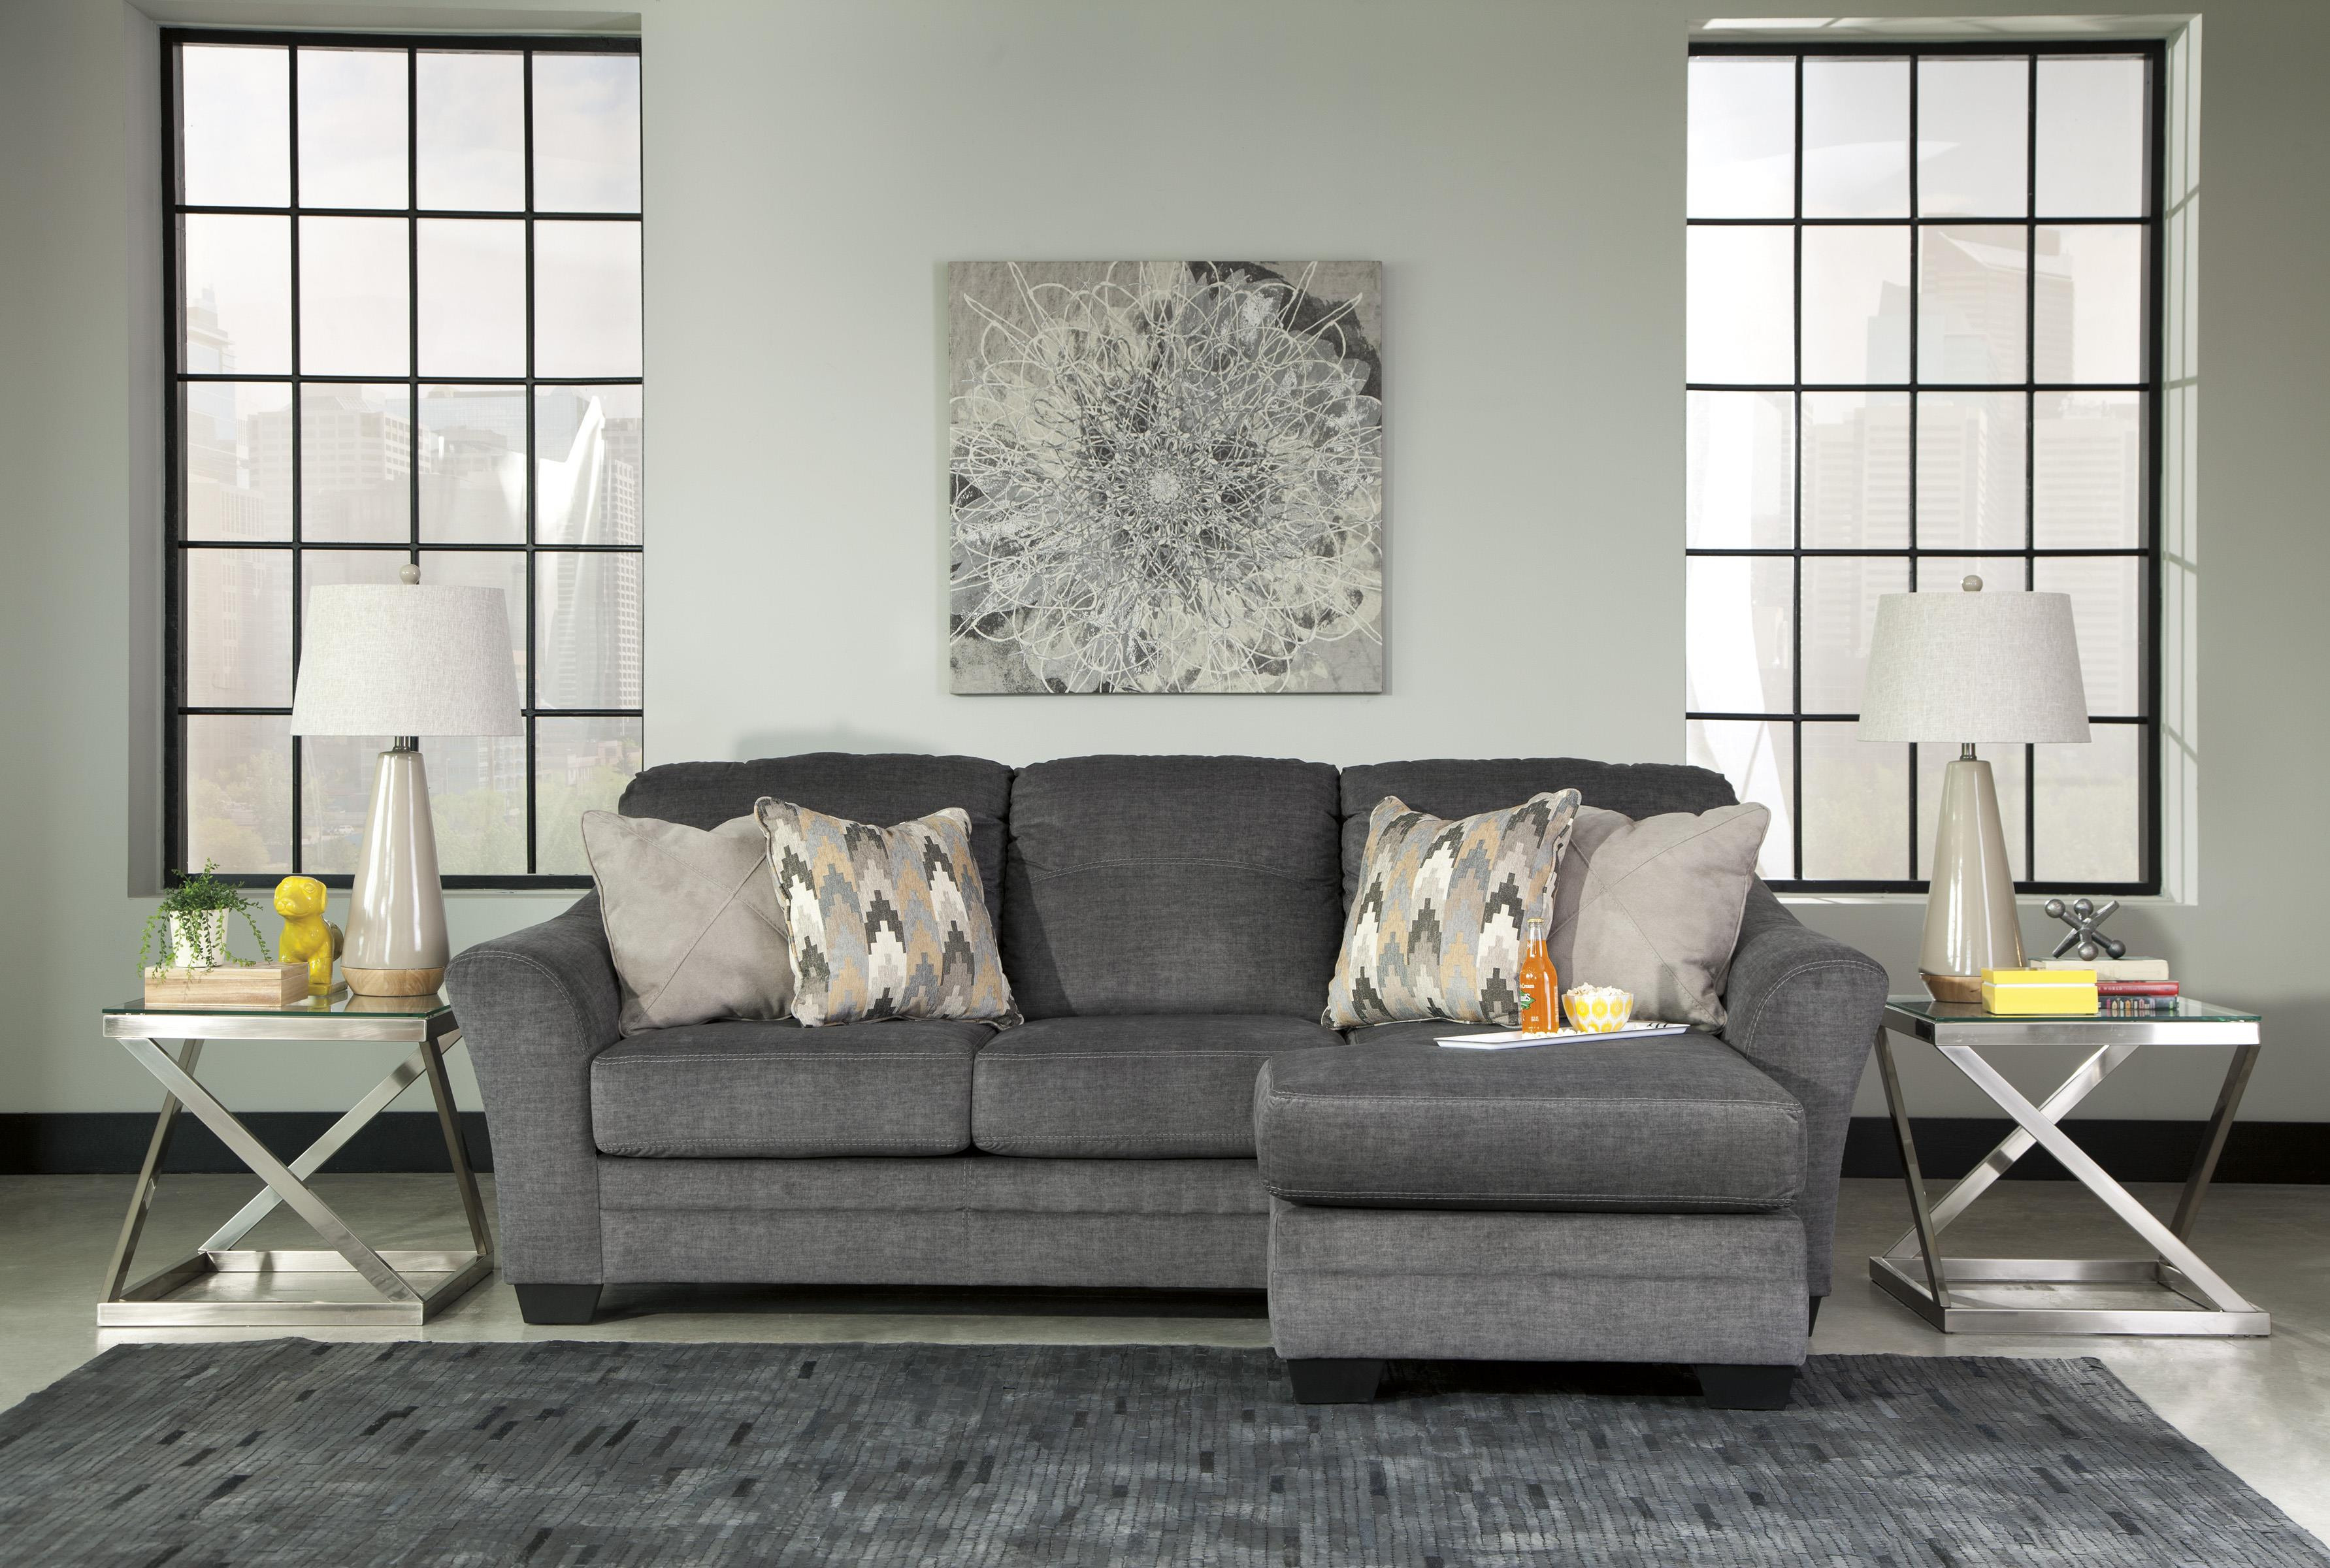 Contemporary Sofa Chaise in Gray Fabric by Benchcraft